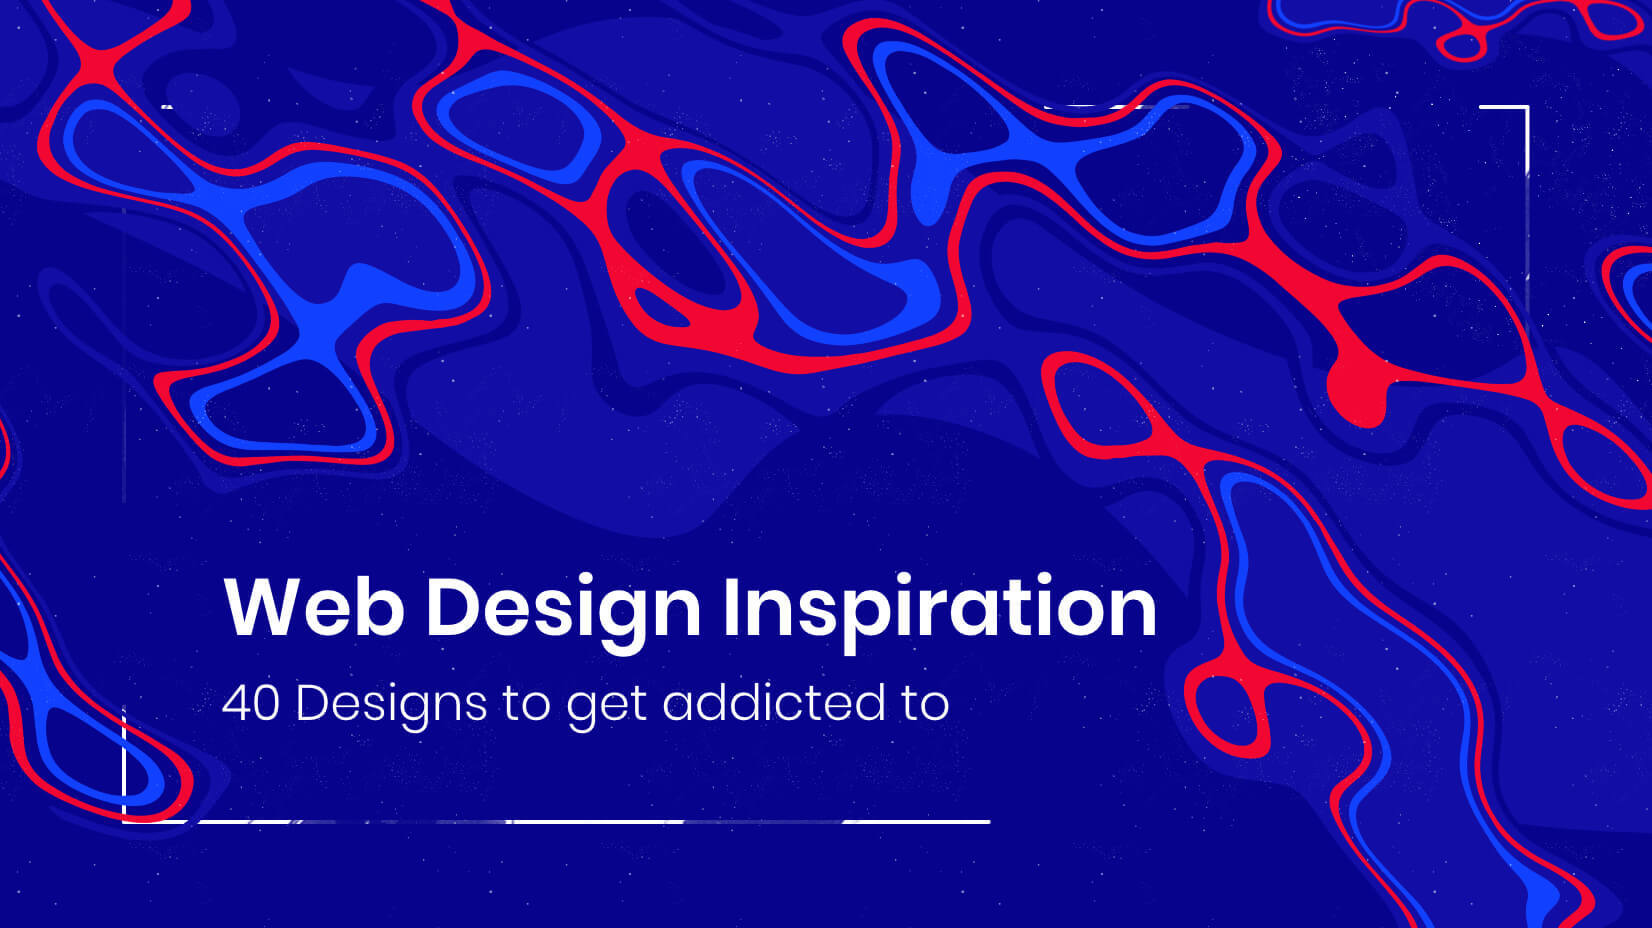 Web Design Inspiration: 40 Designs to get addicted to